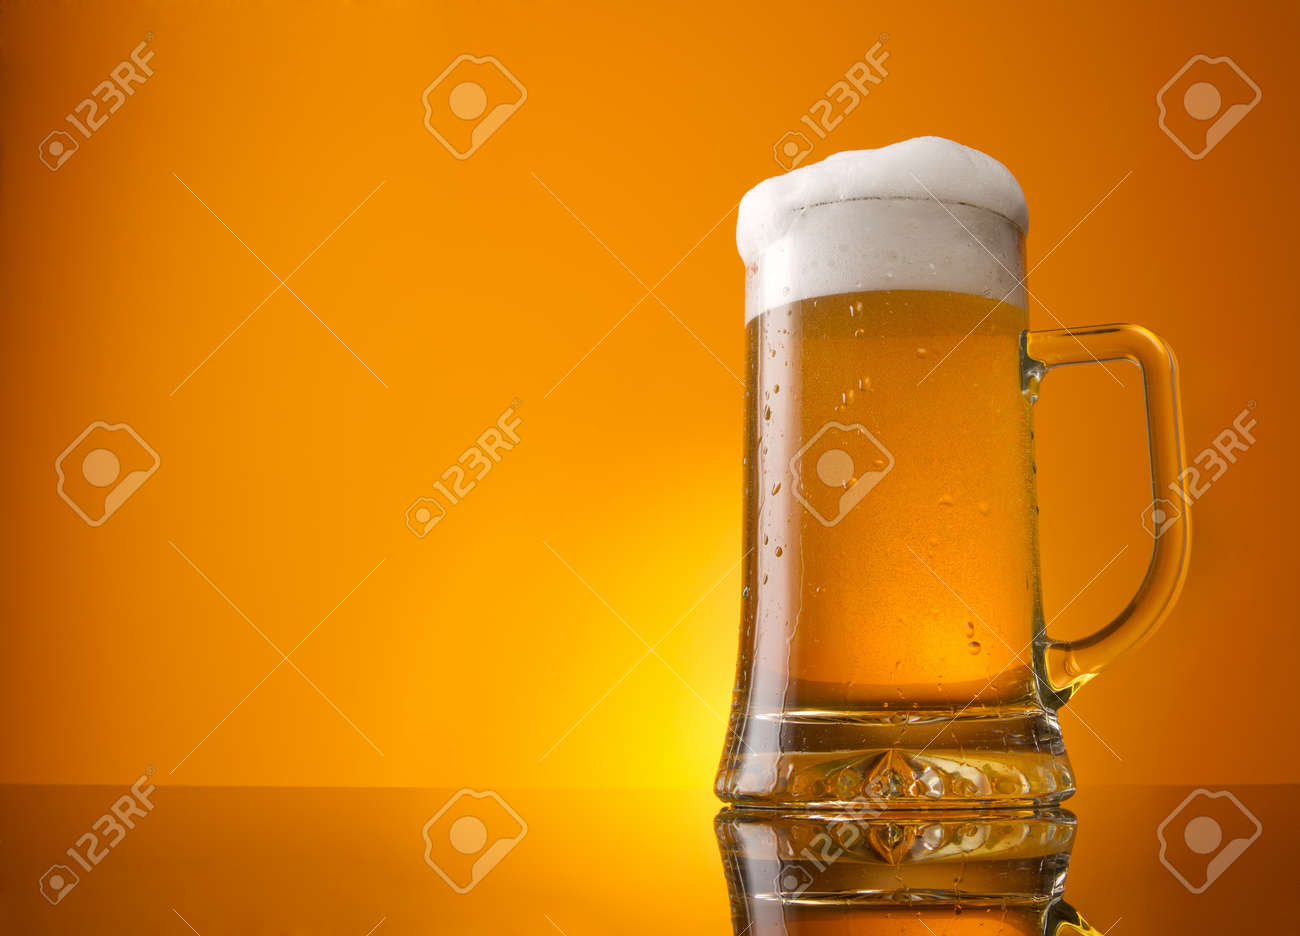 Glass of beer close-up with froth over orange background - 10693387